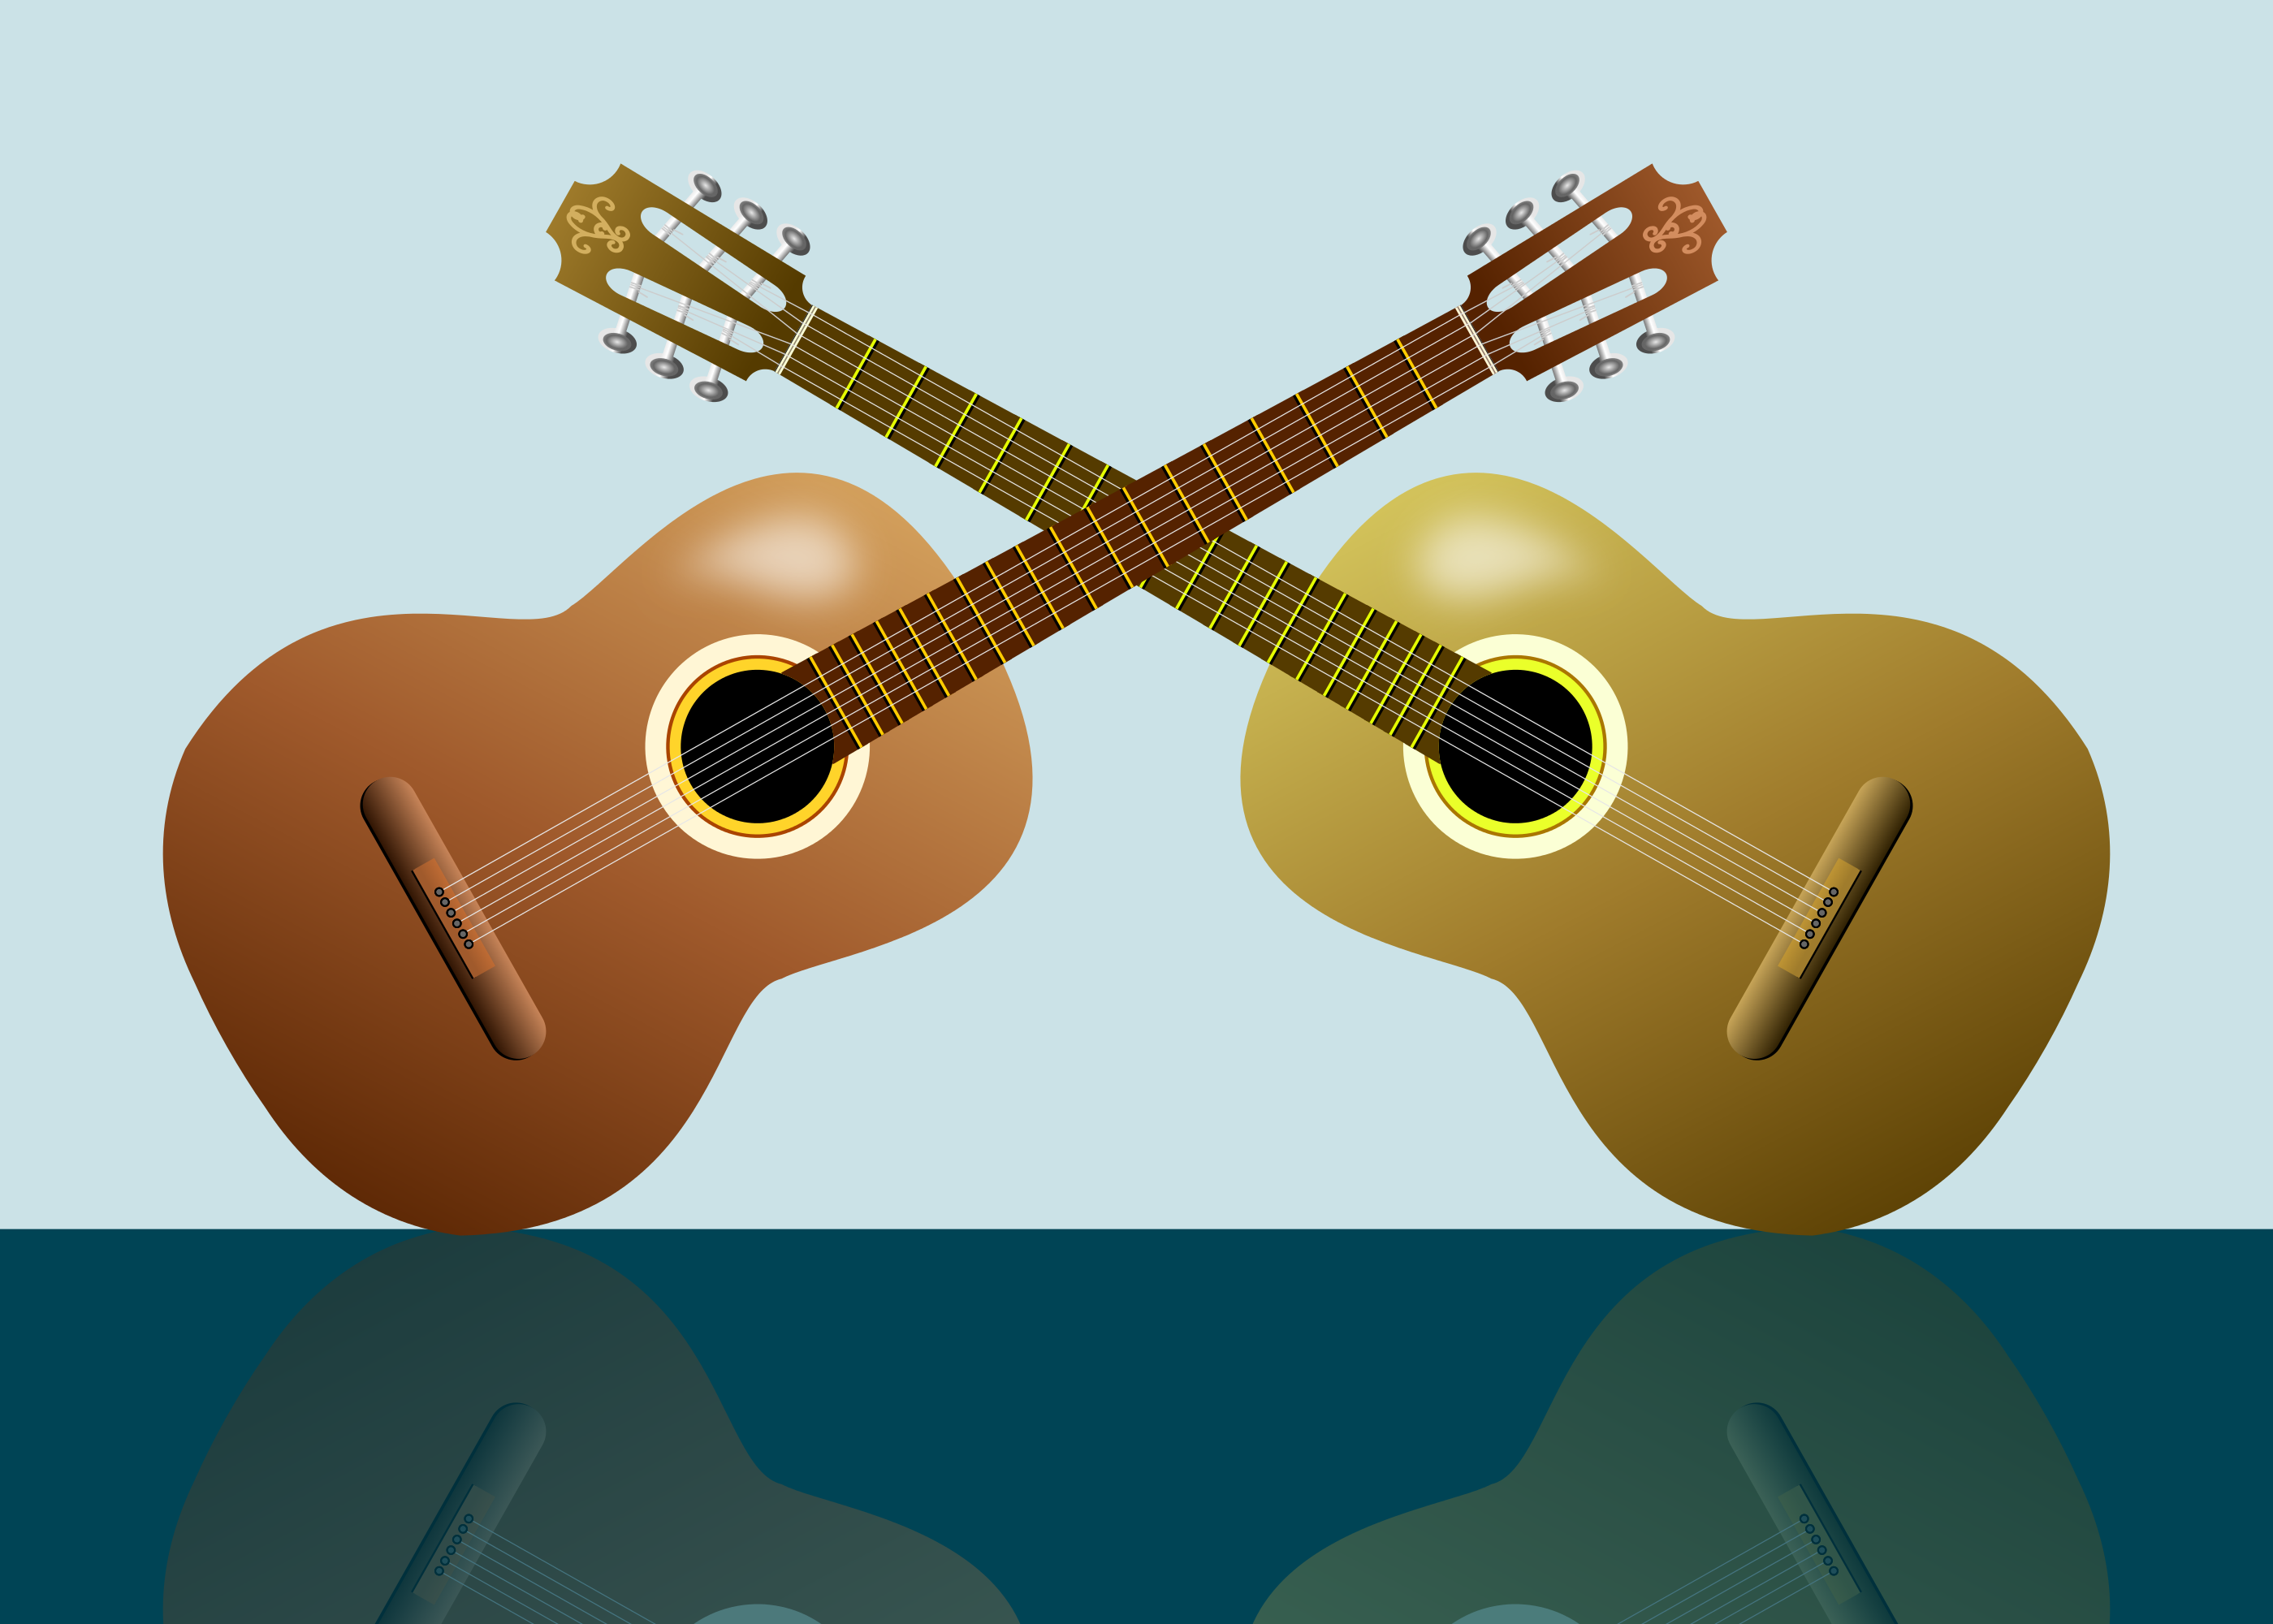 2 guitars clipart clip black and white library 2 guitars clipart 2799x2000 | Clip Art Everyday for Cards ... clip black and white library